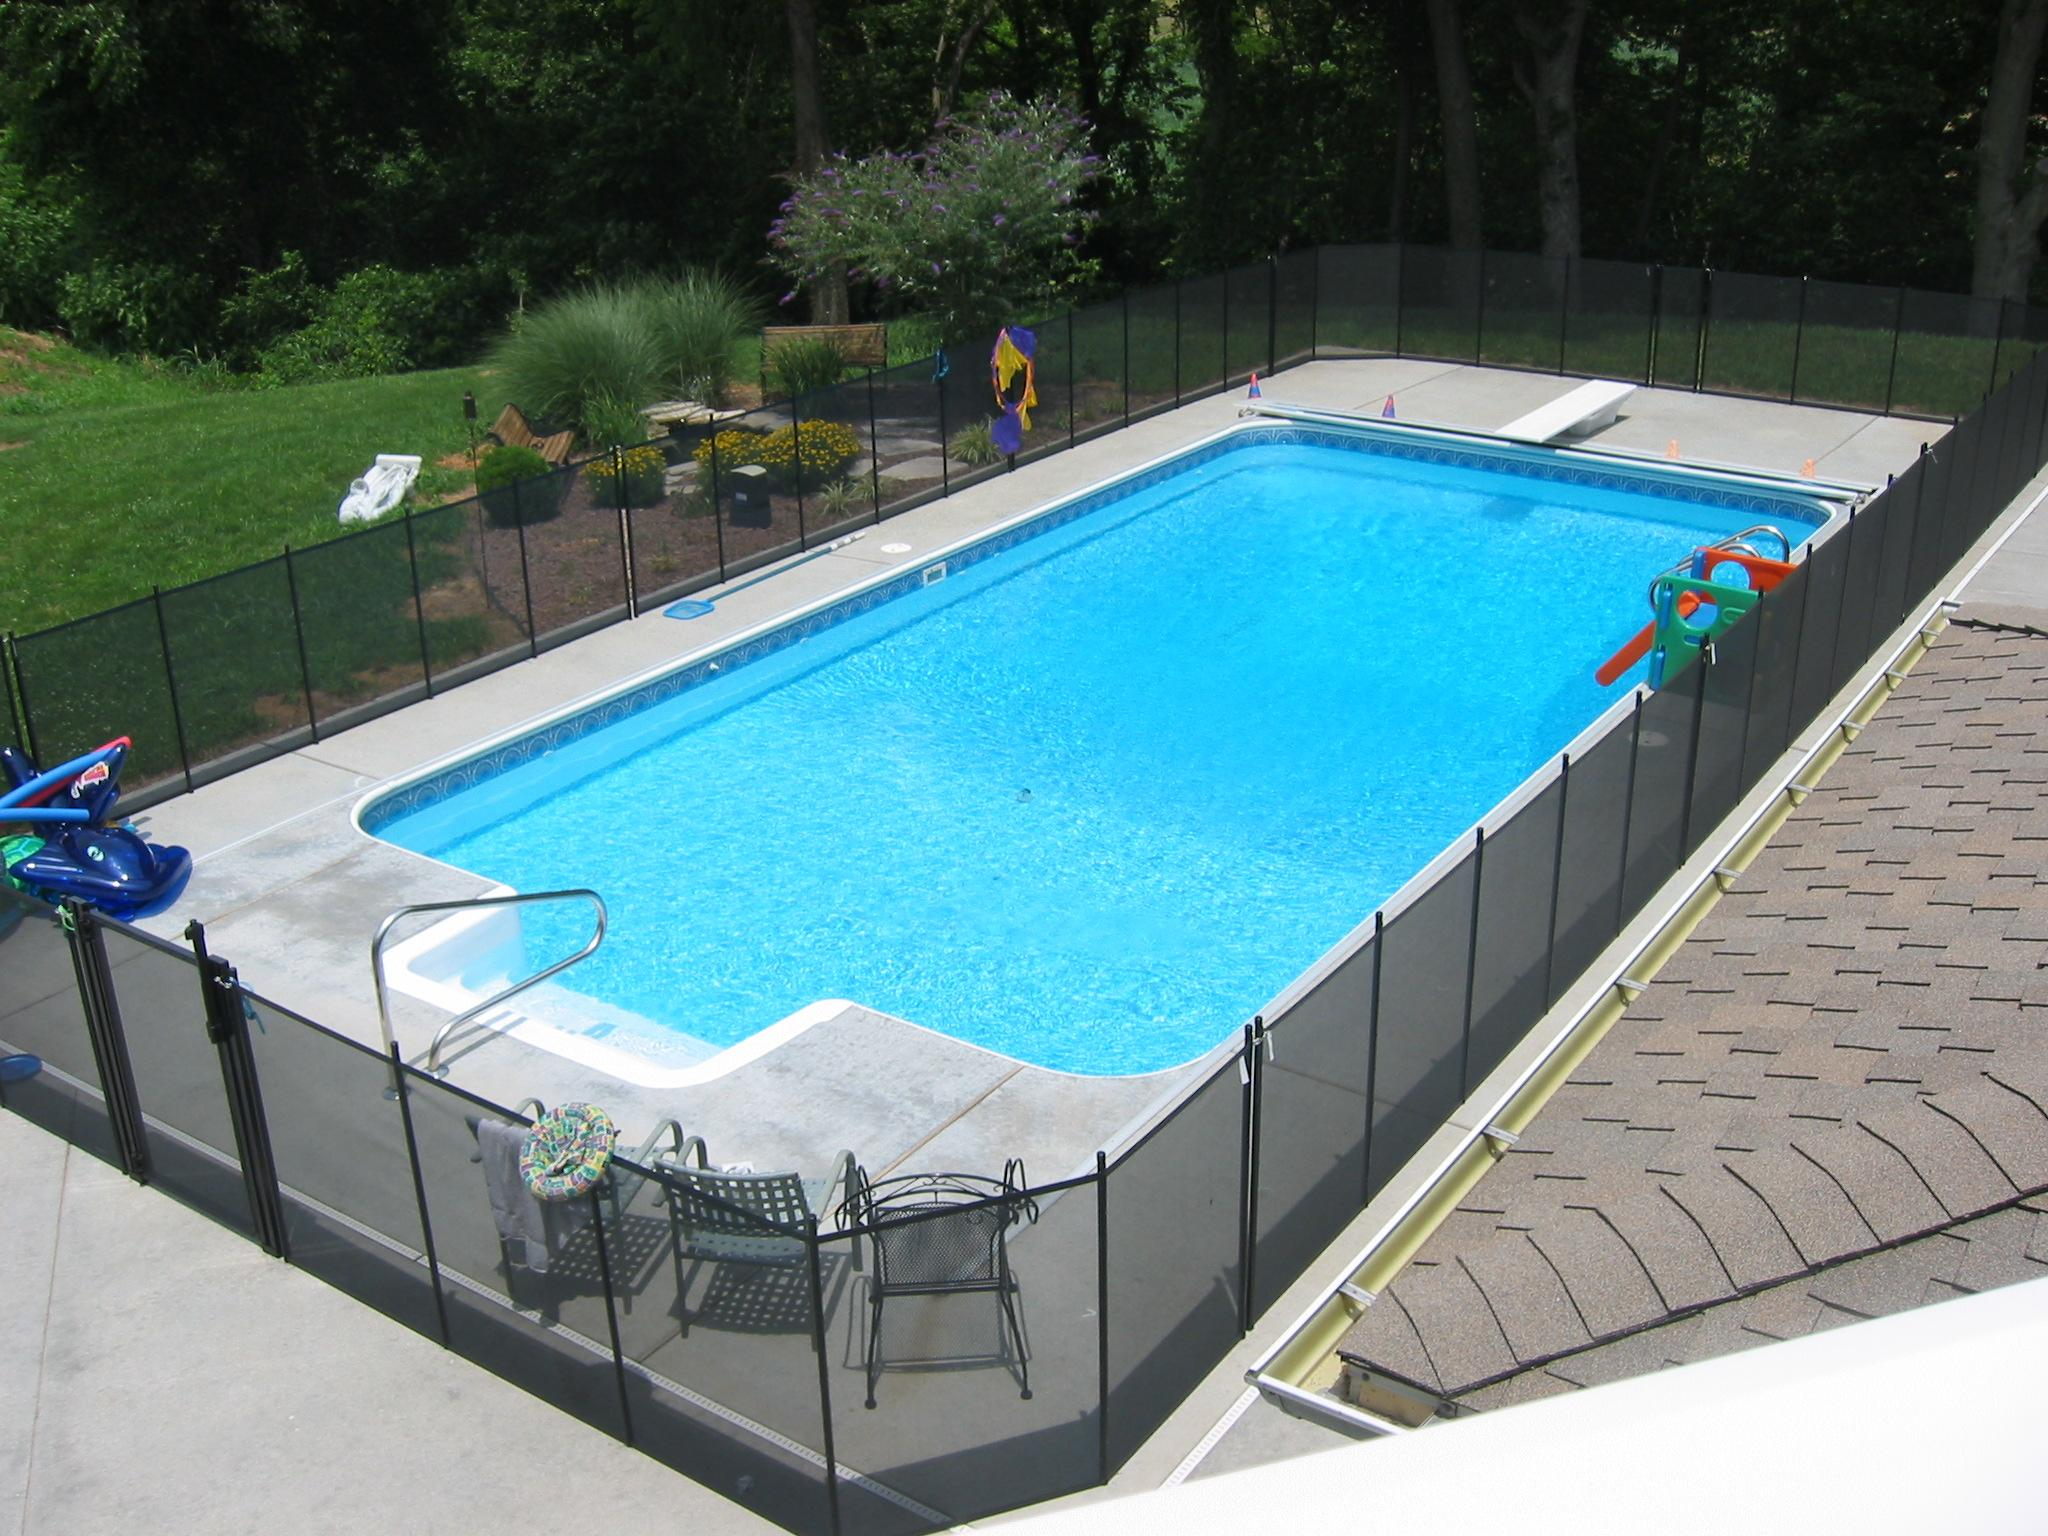 Pool fencing life saver fence systems